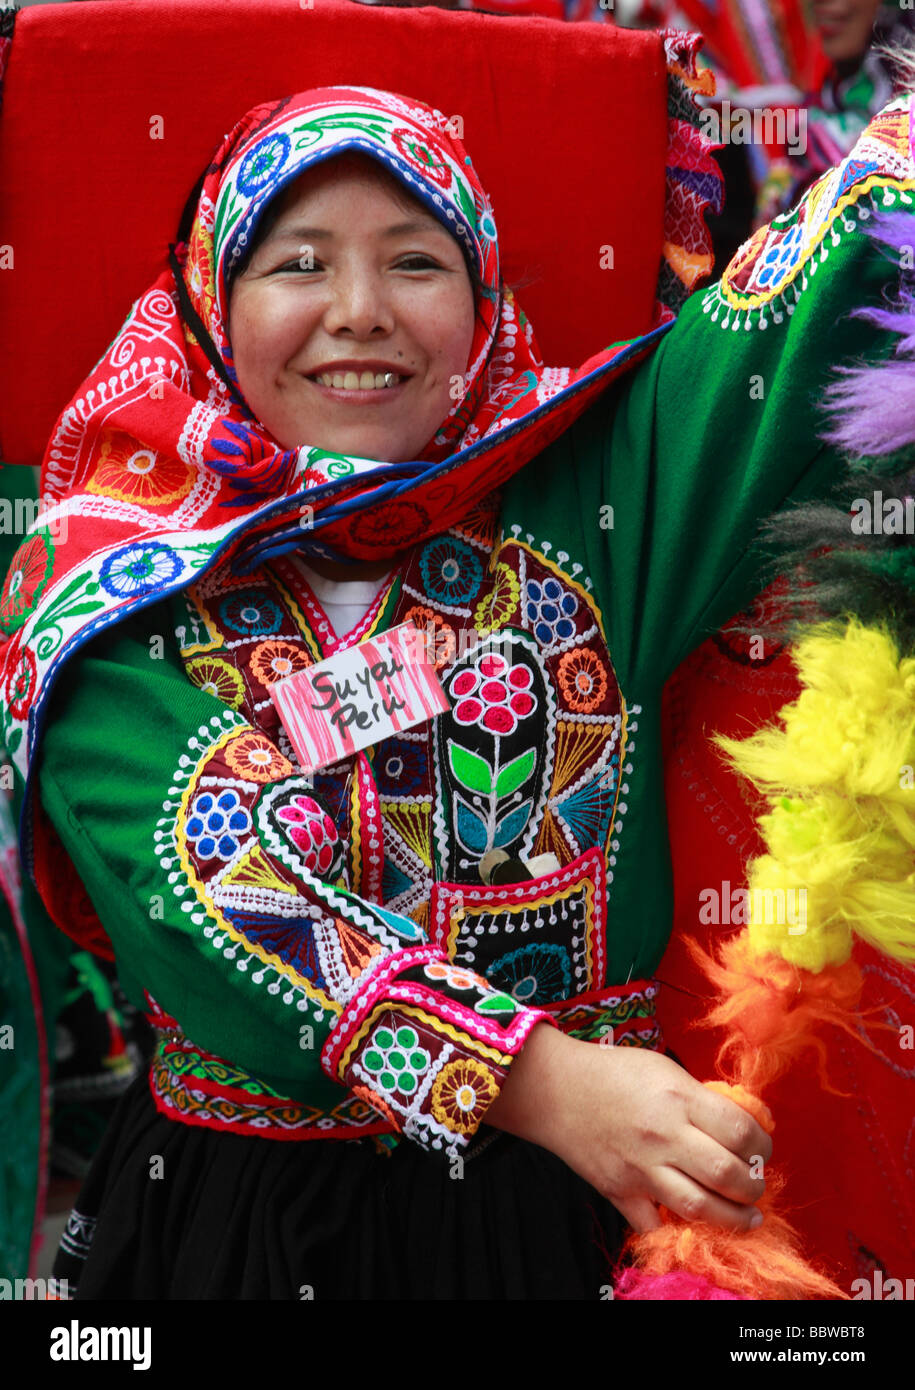 Germany Berlin Carnival of Cultures Peruvian woman in traditional dress - Stock Image